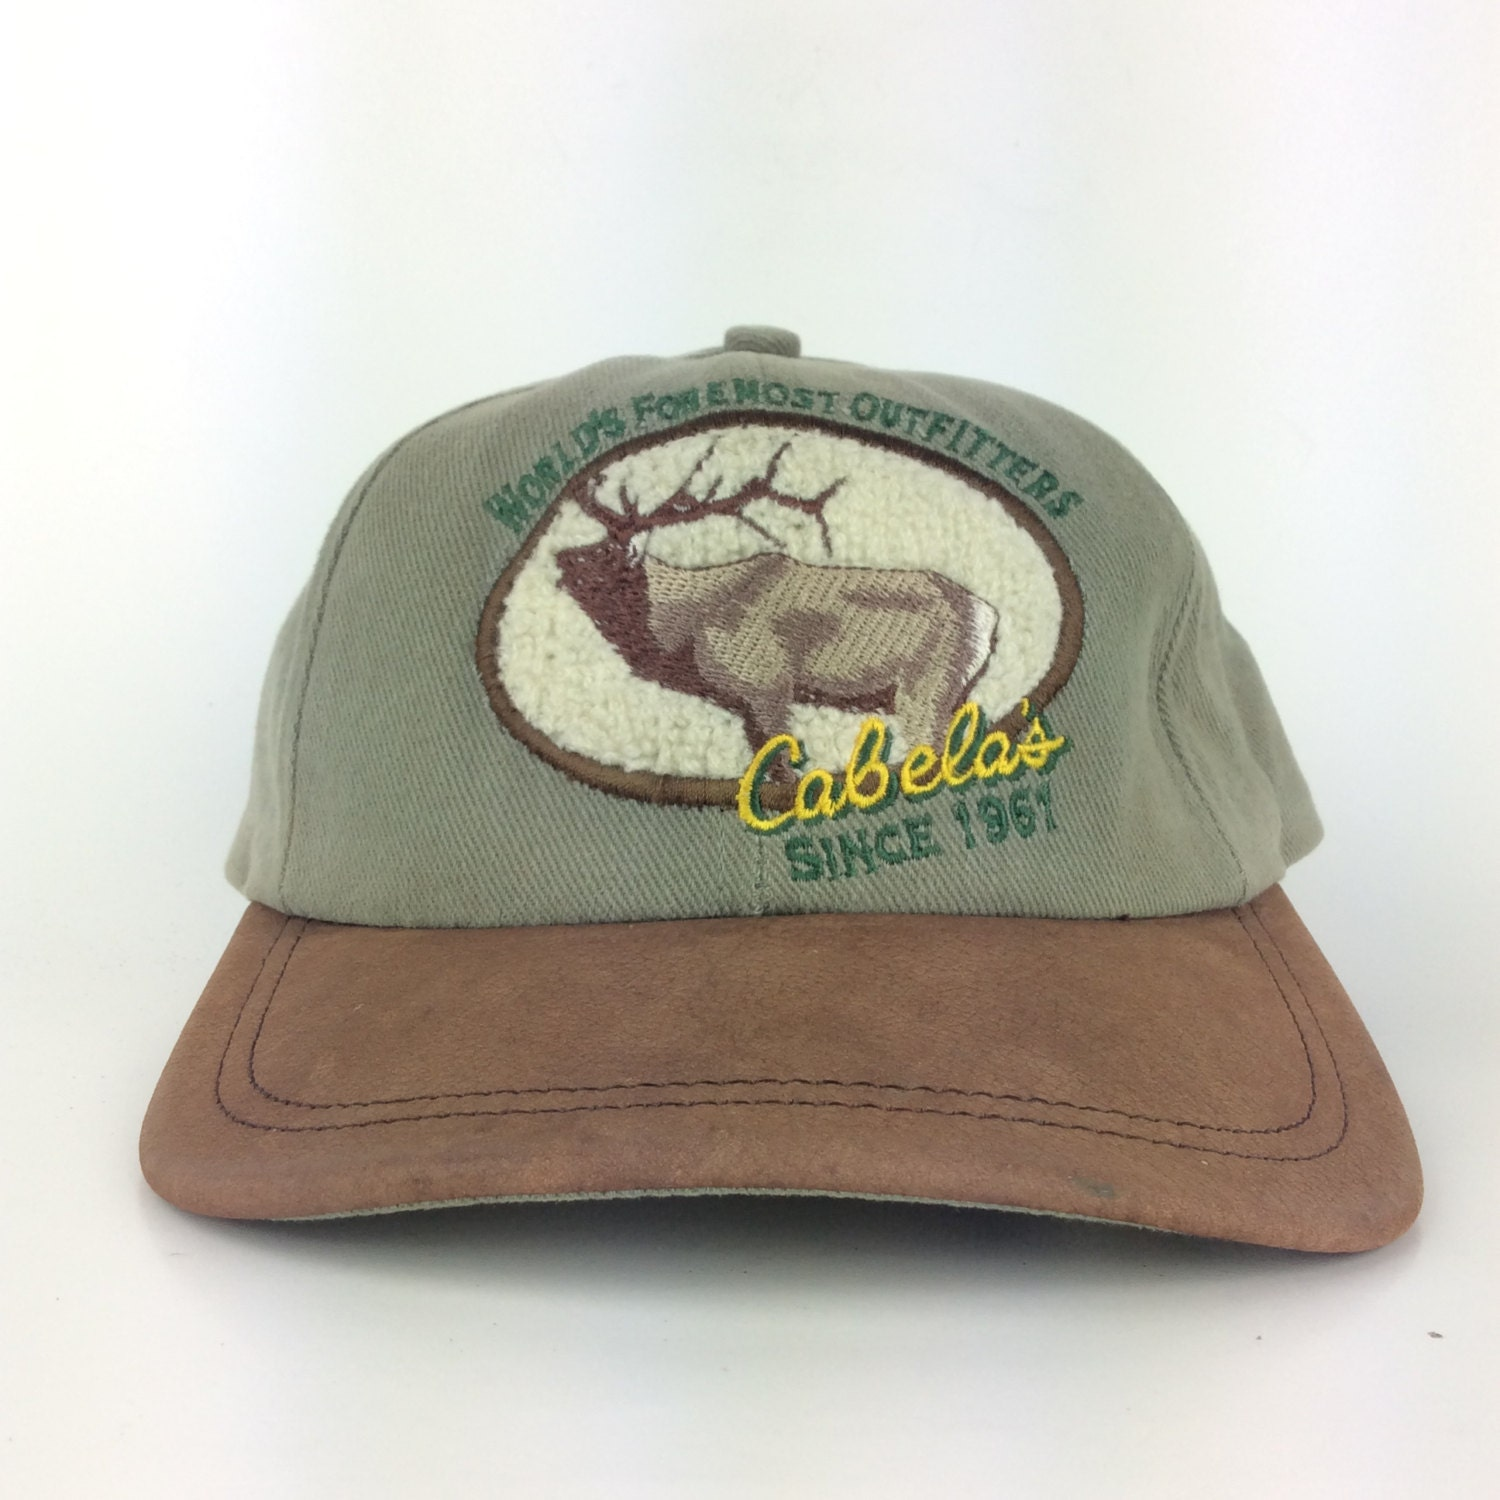 Vintage Cabela's Outfitters Baseball Cap Hat Leather Brim